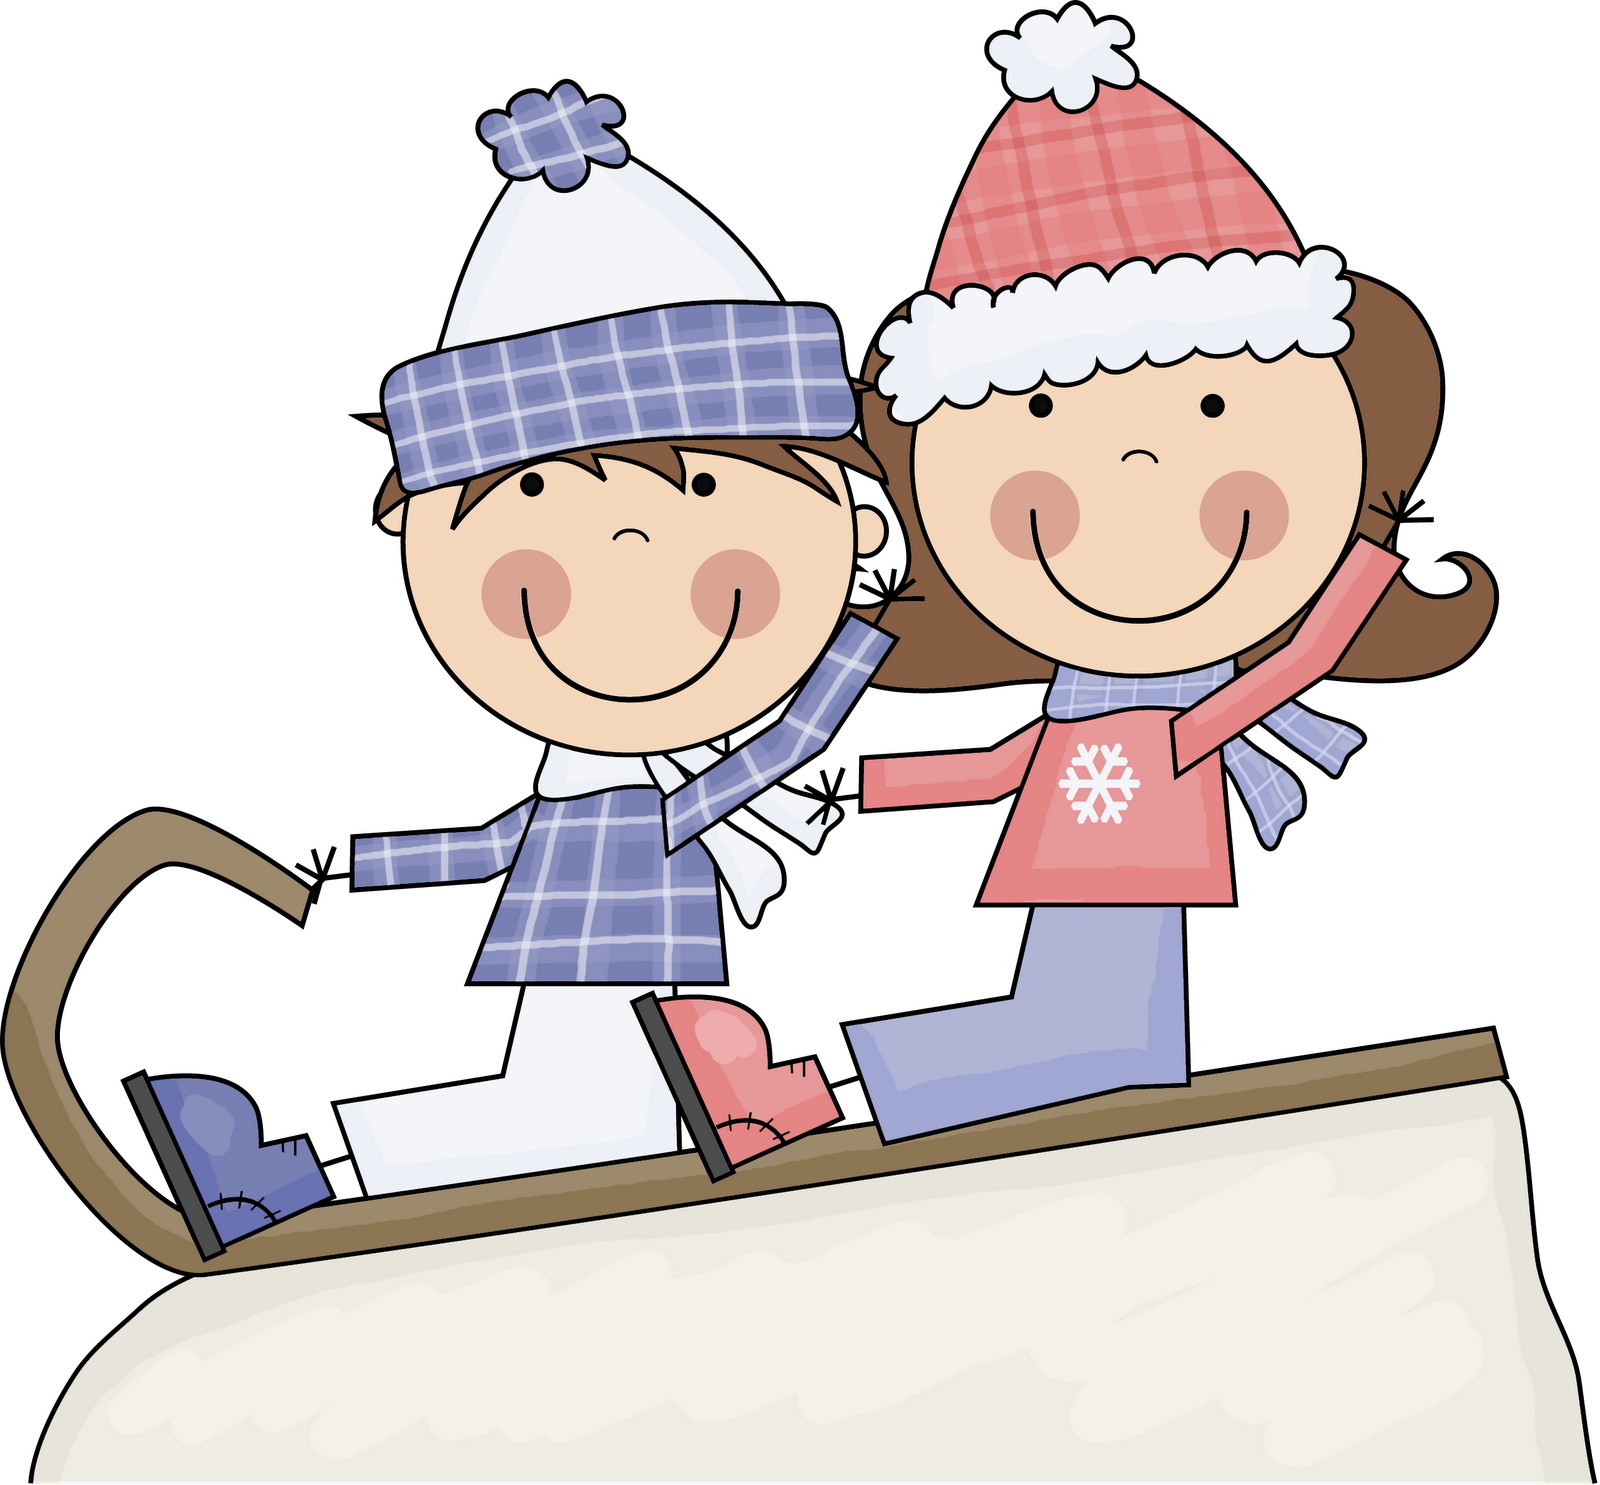 snow day cliparts download clip art clip #32973